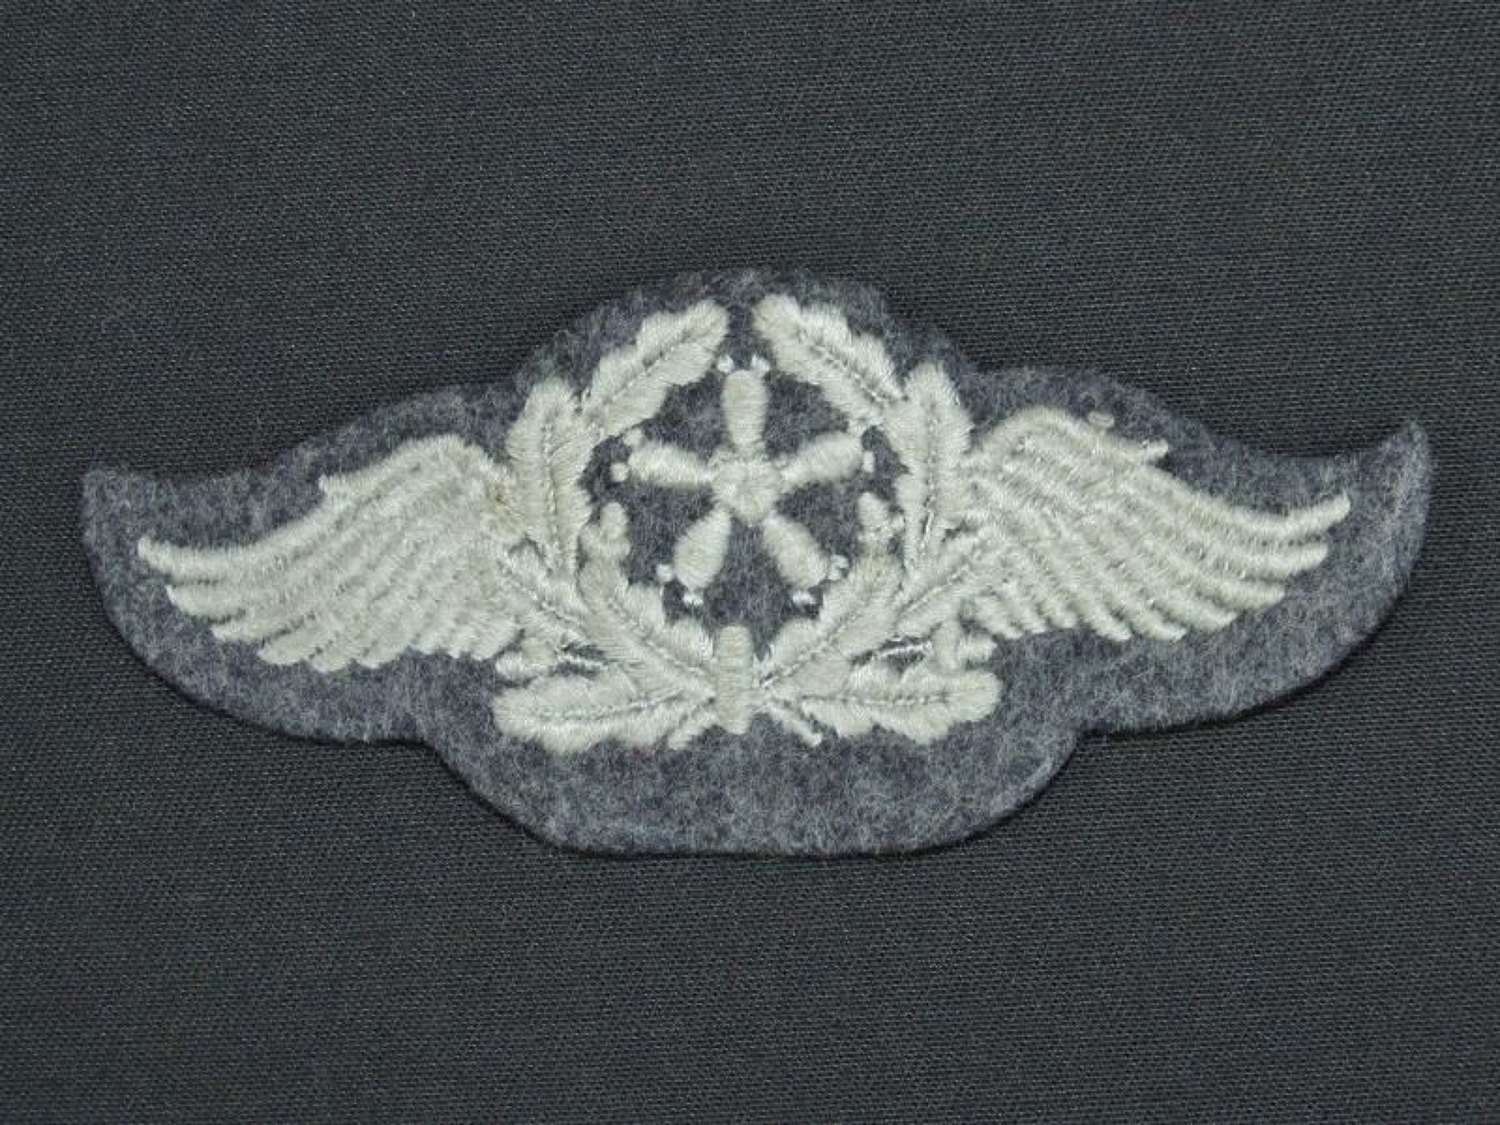 Luftwaffe Specialty Badge for Flying Technical Personnel